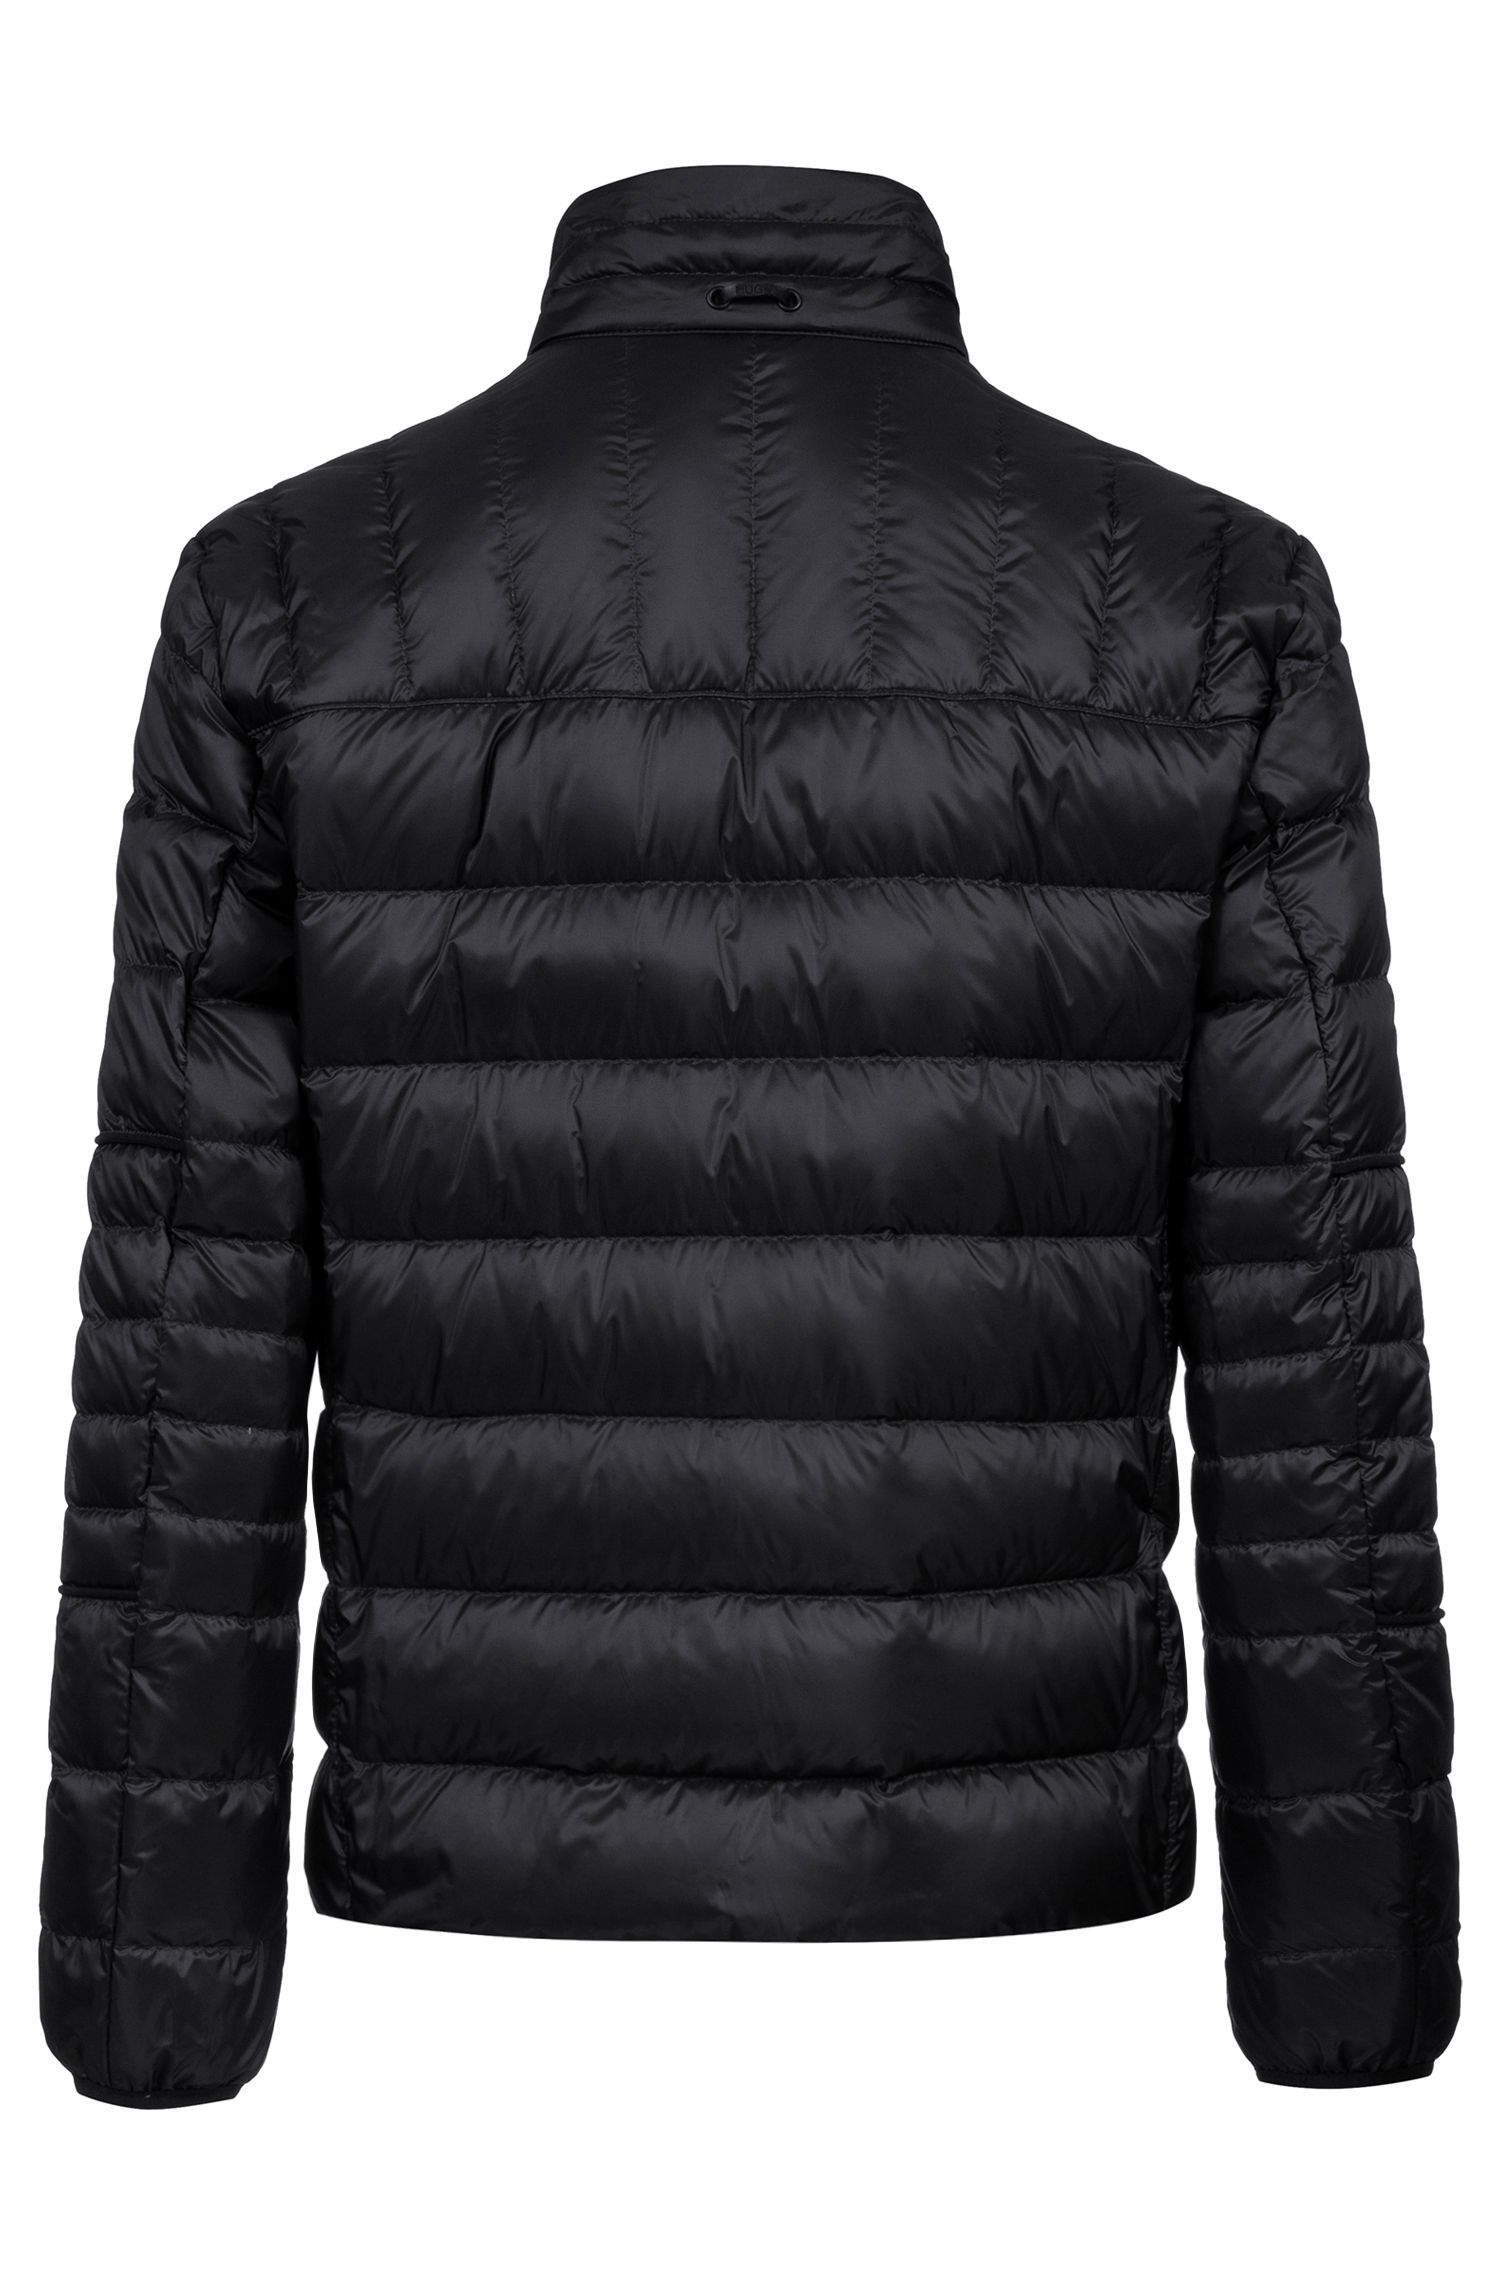 Regular-fit down jacket in water-repellent technical fabric, Black